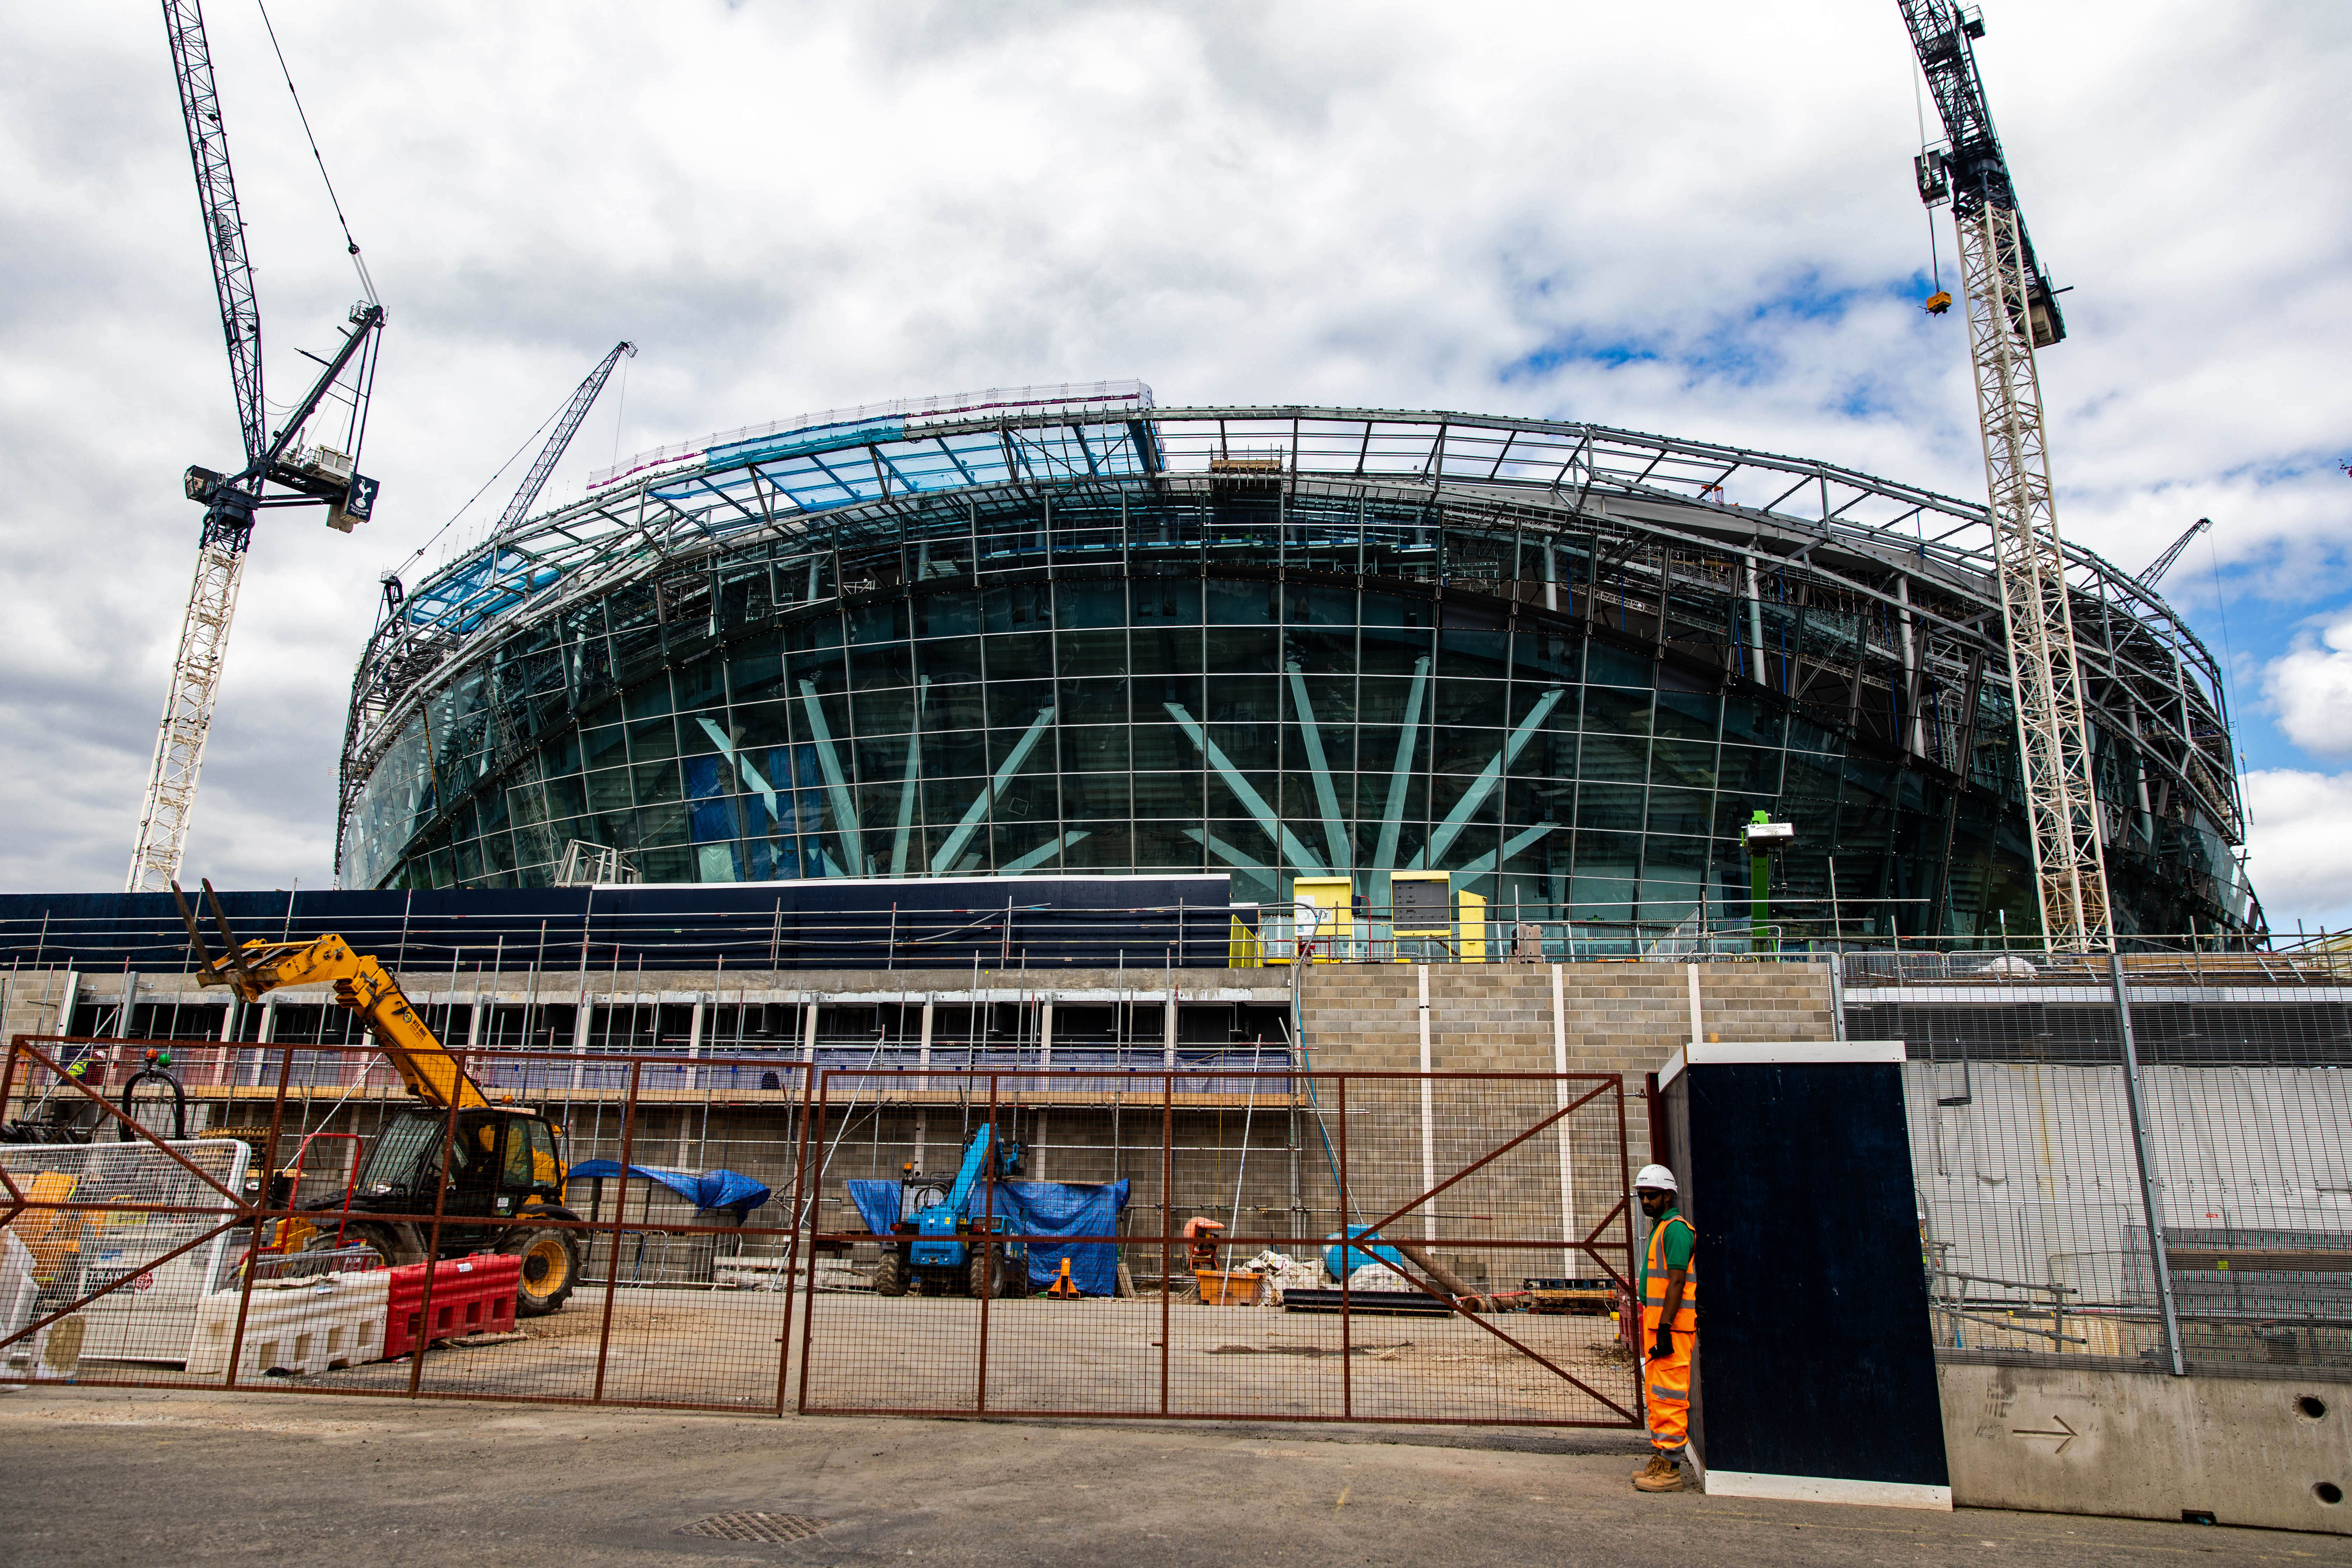 Tottenham Confirm Move To New Stadium Has Been Delayed